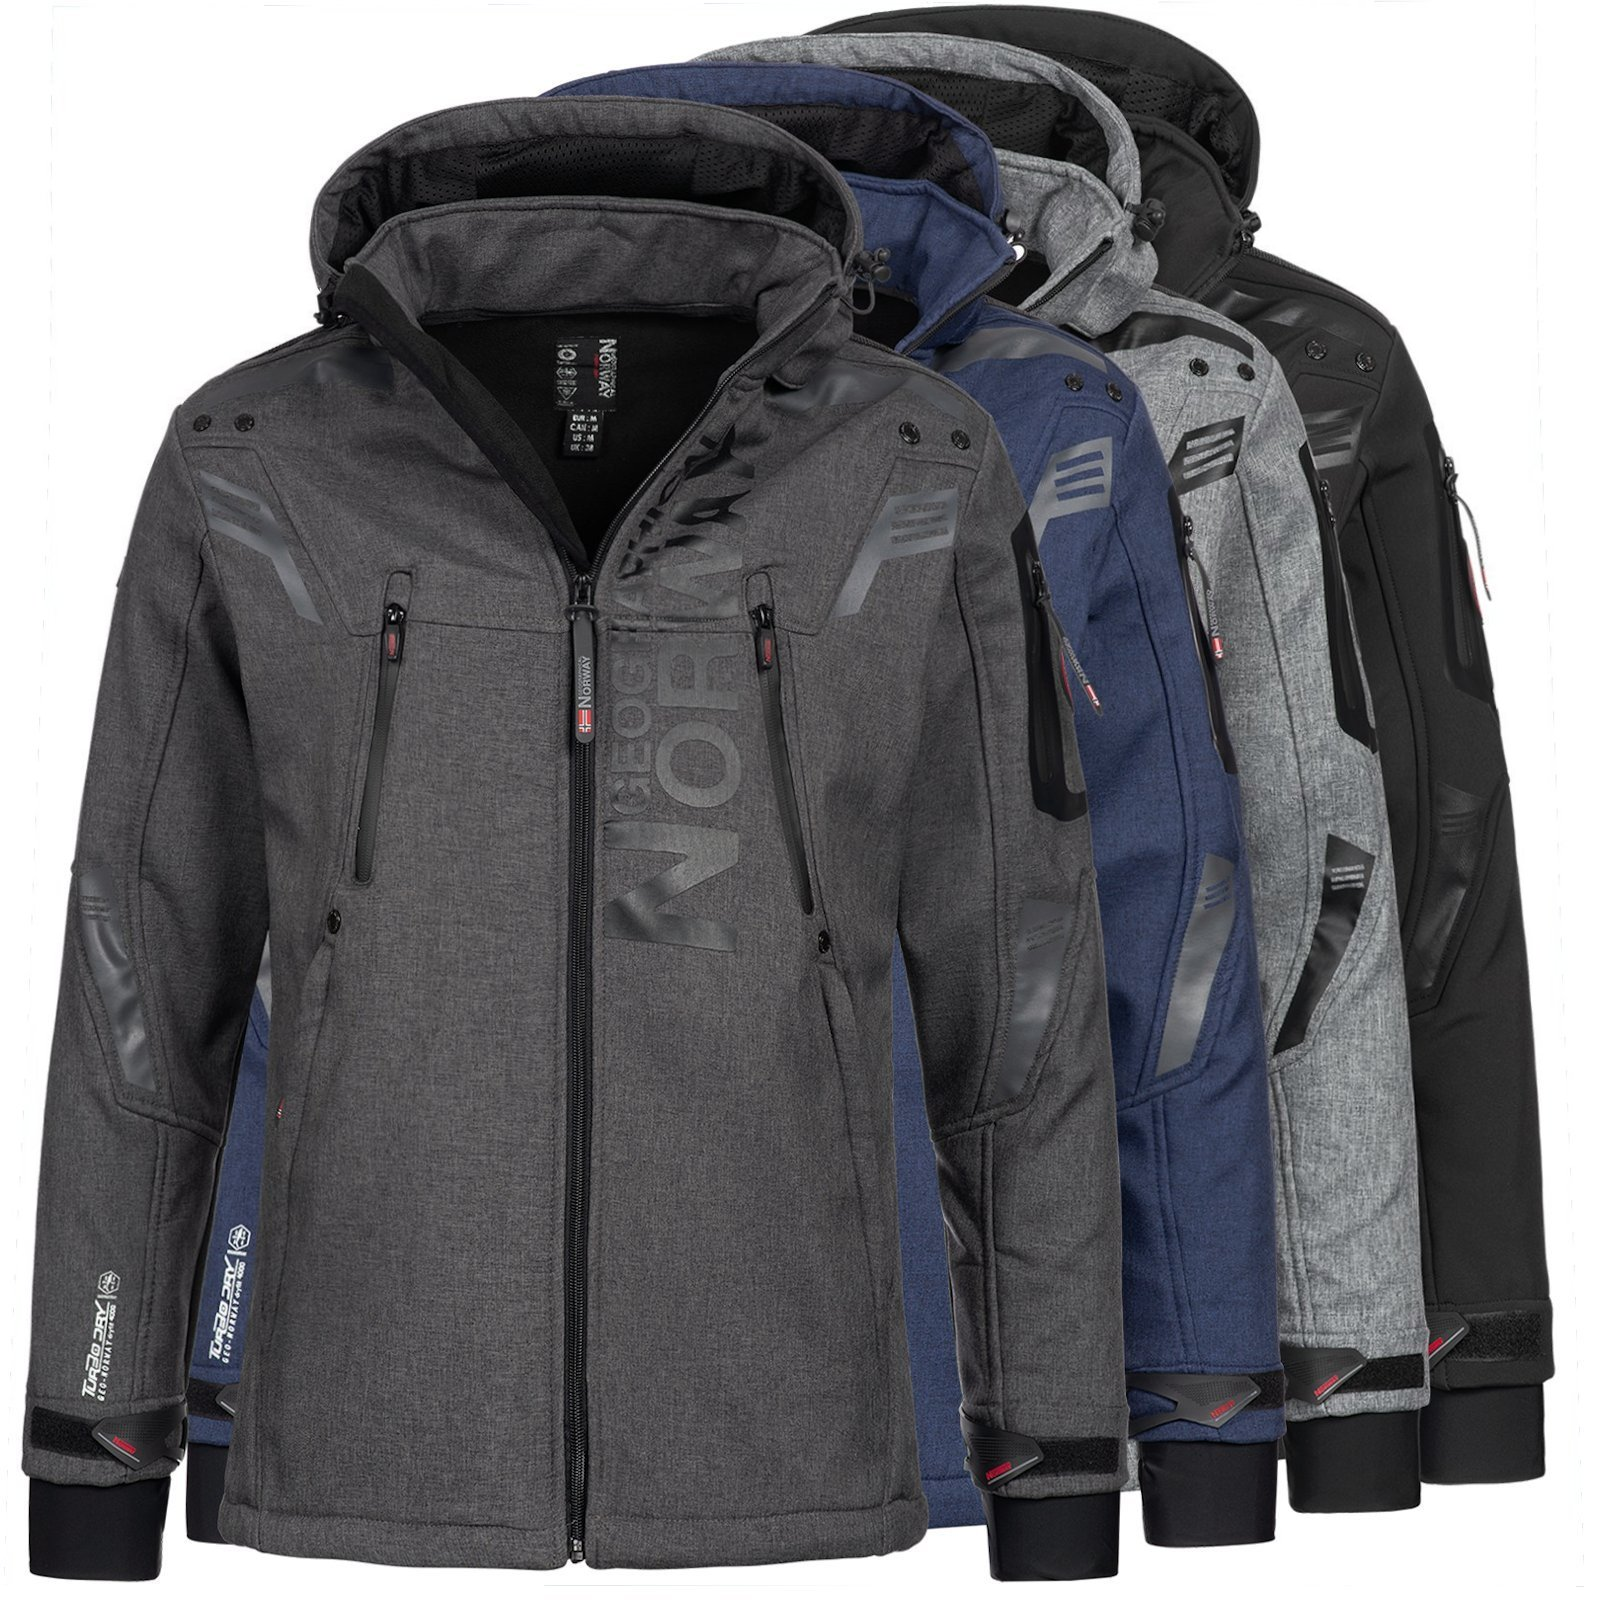 Details about Geographical Norway Men's Jacket Softshell Jacket Outdoor Rain Jacket Talentueux show original title